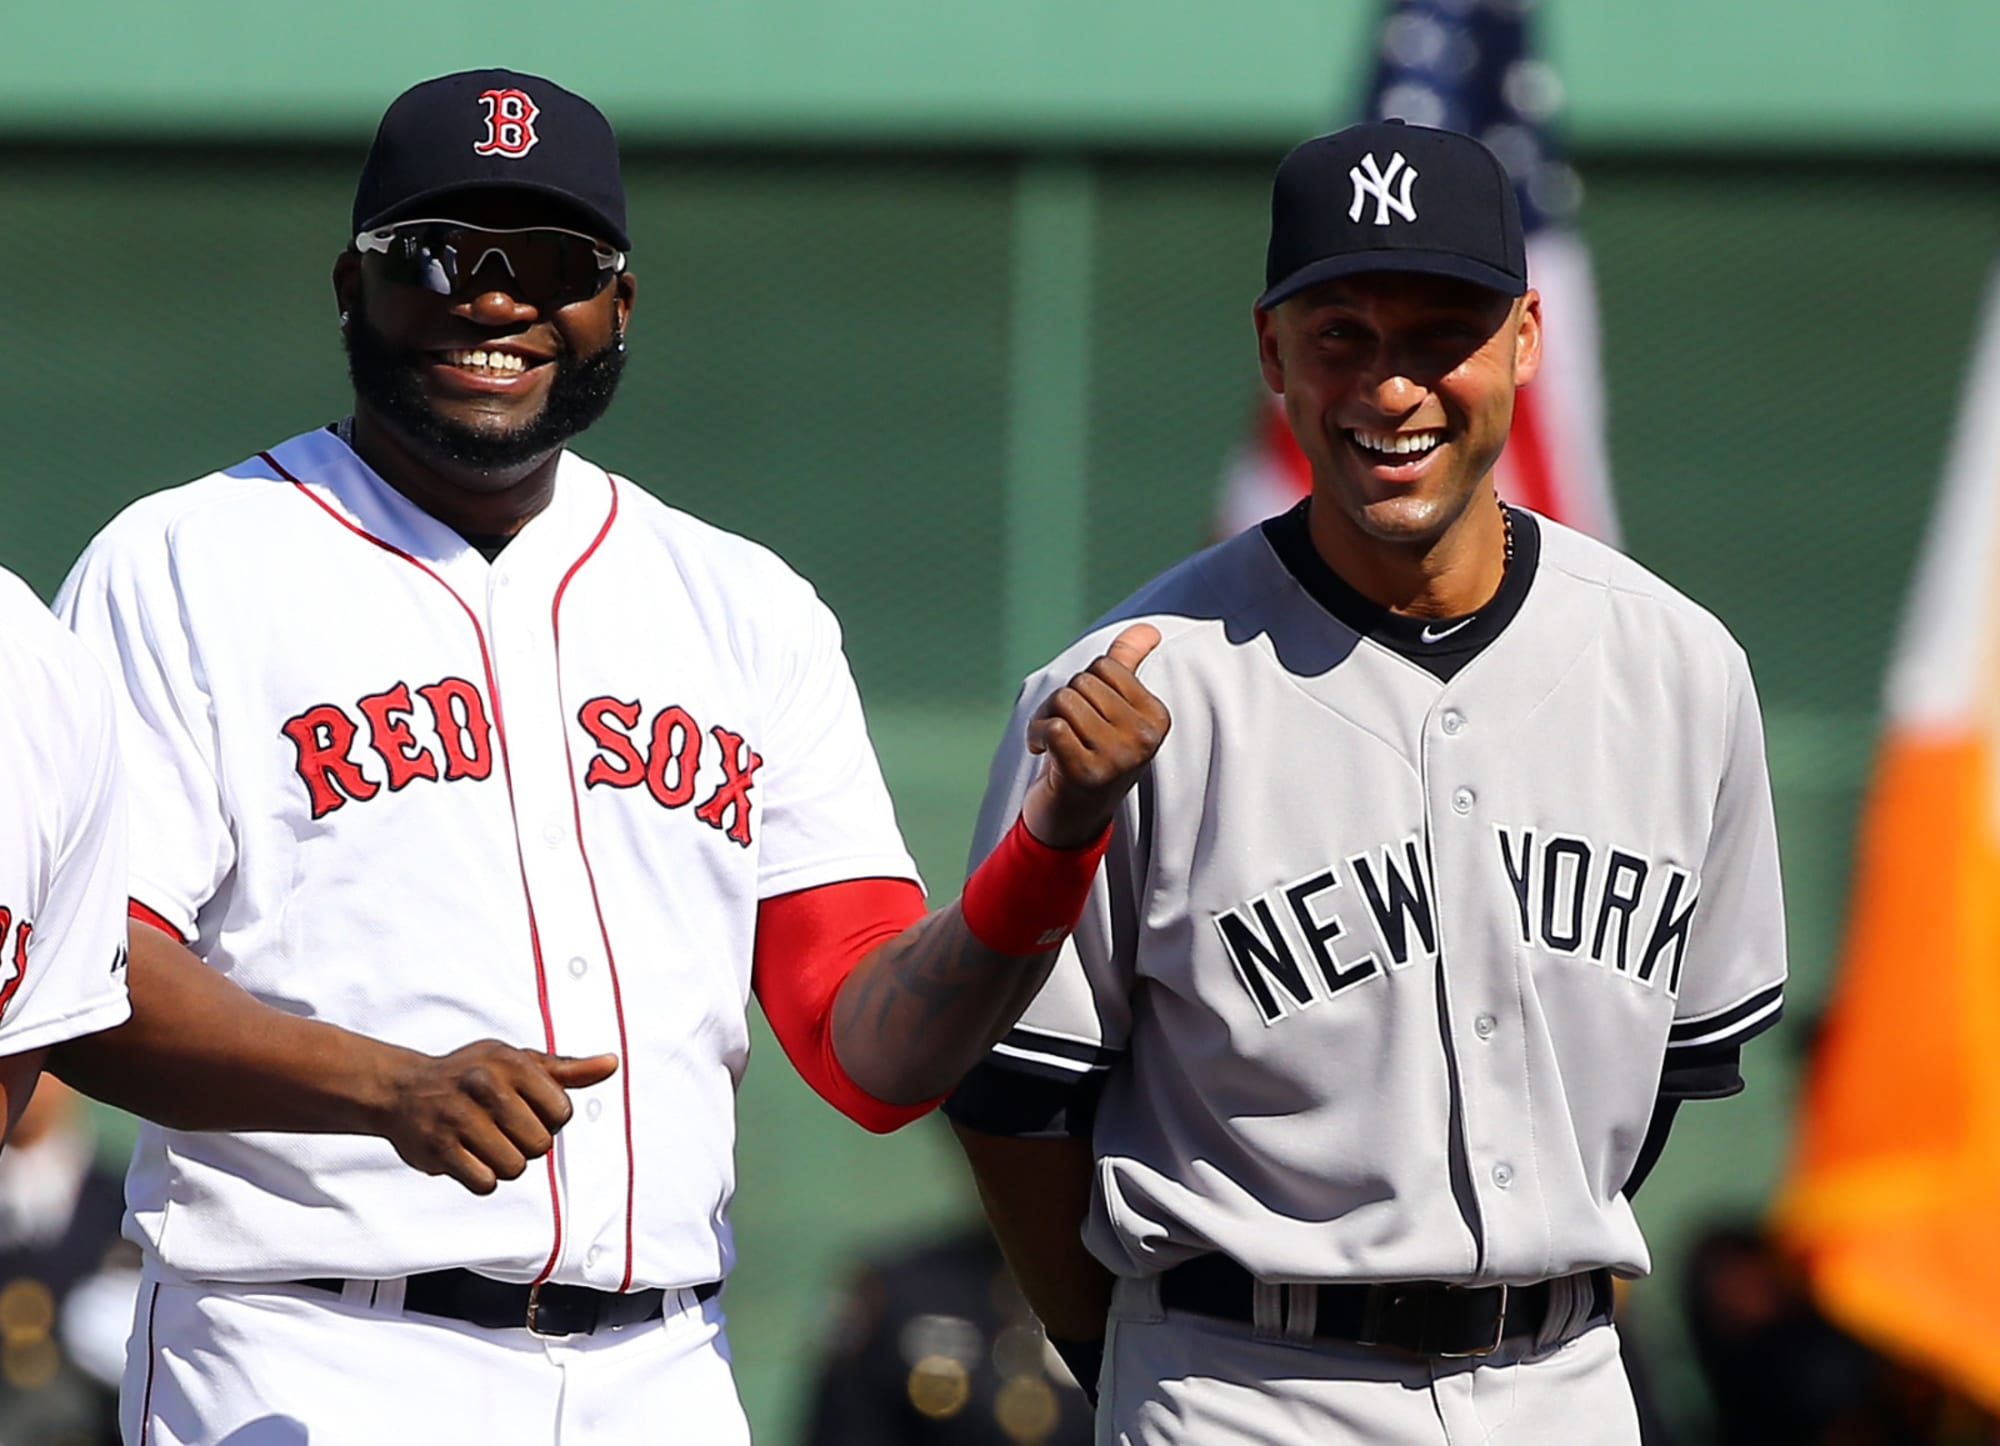 Who is more Clutch? Derek Jeter or David Ortiz?